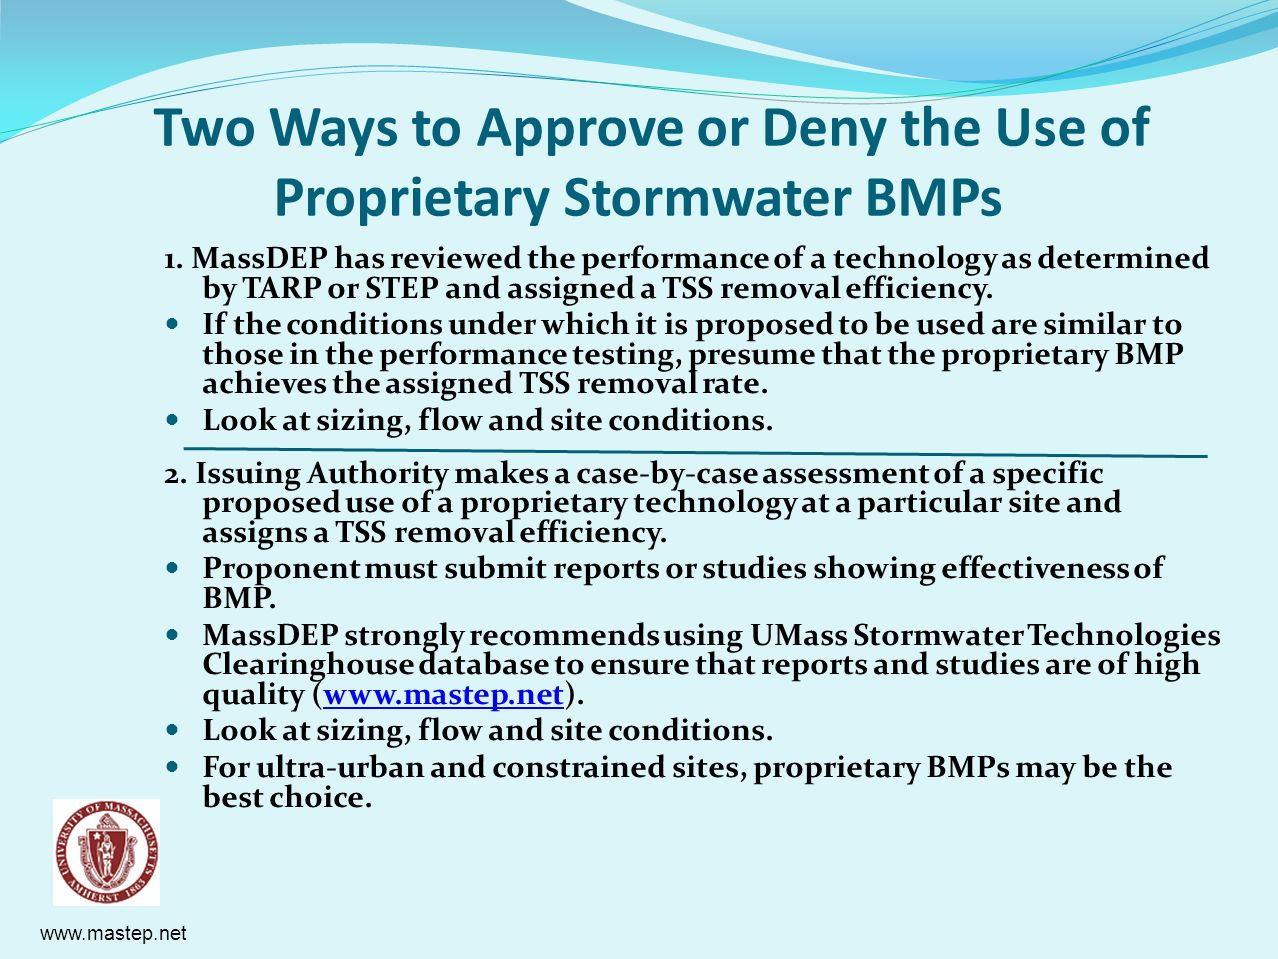 Two Ways to Approve or Deny the Use of Proprietary Stormwater BMPs